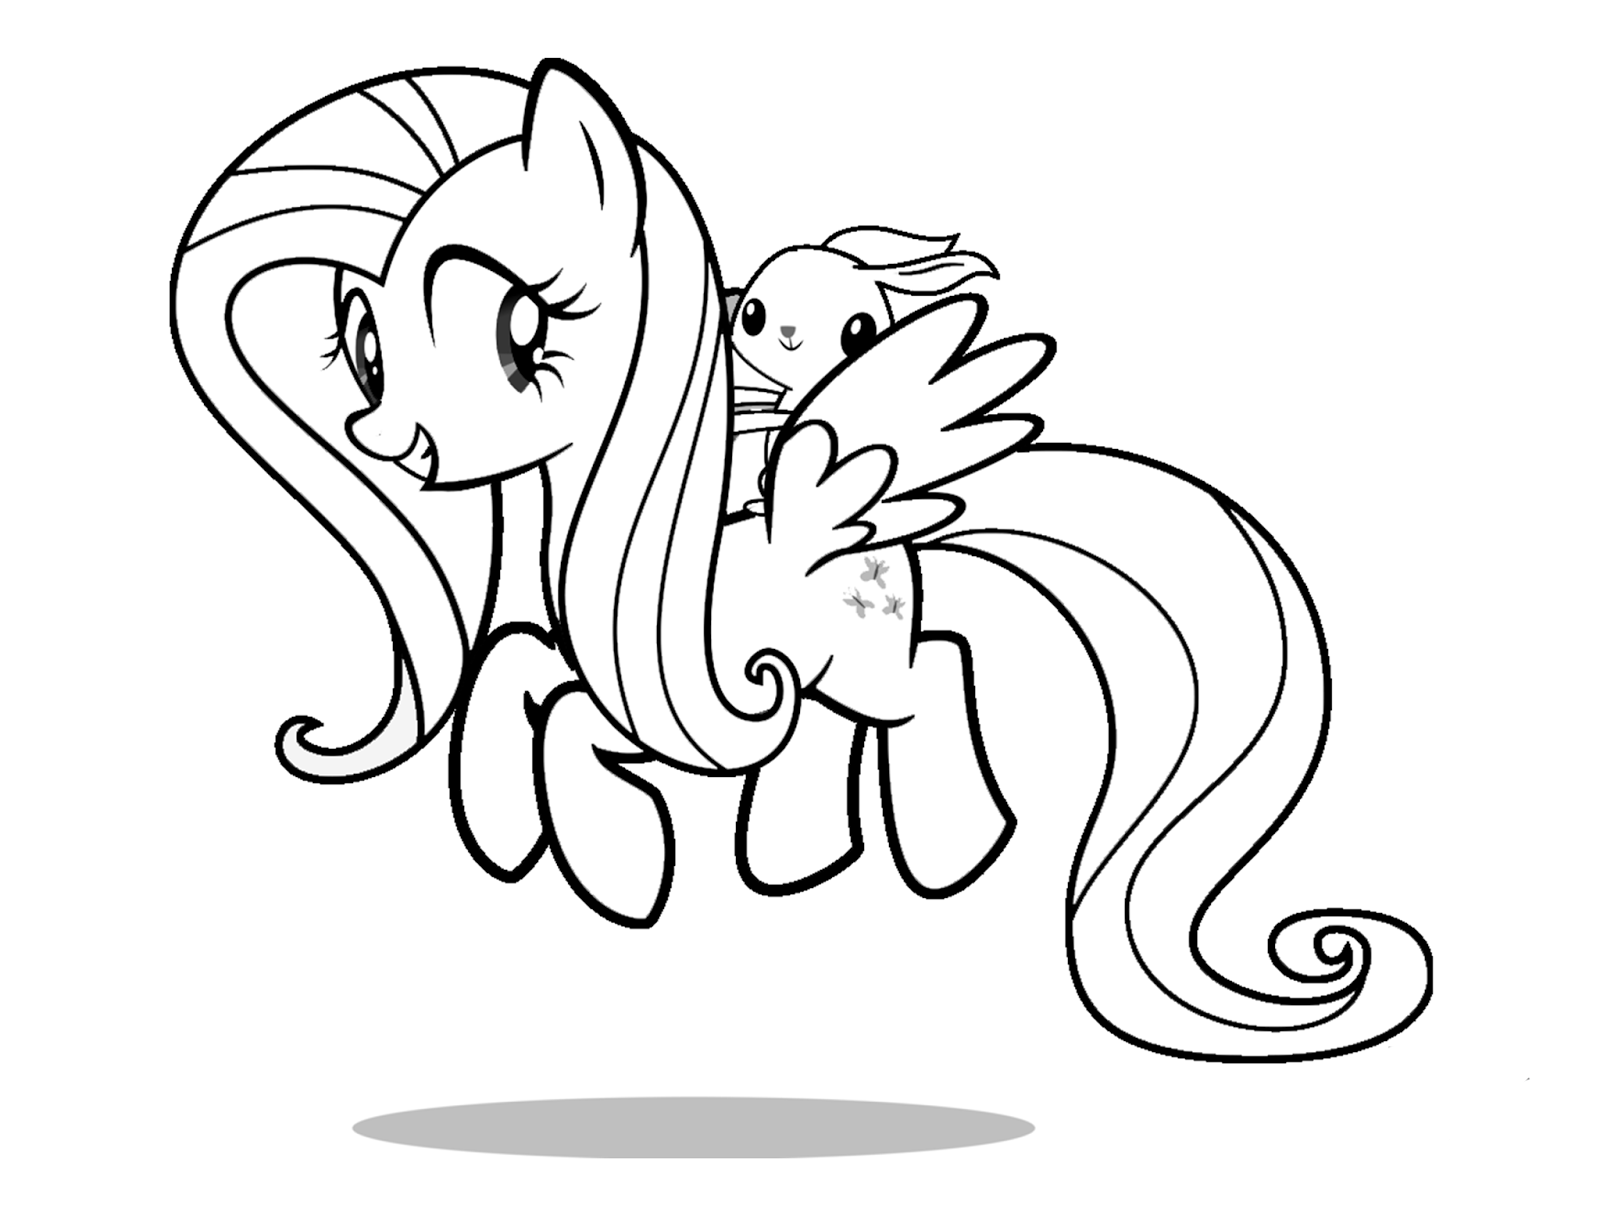 fluttershy coloring pages coloring fun fluttershy fluttershy coloring pages